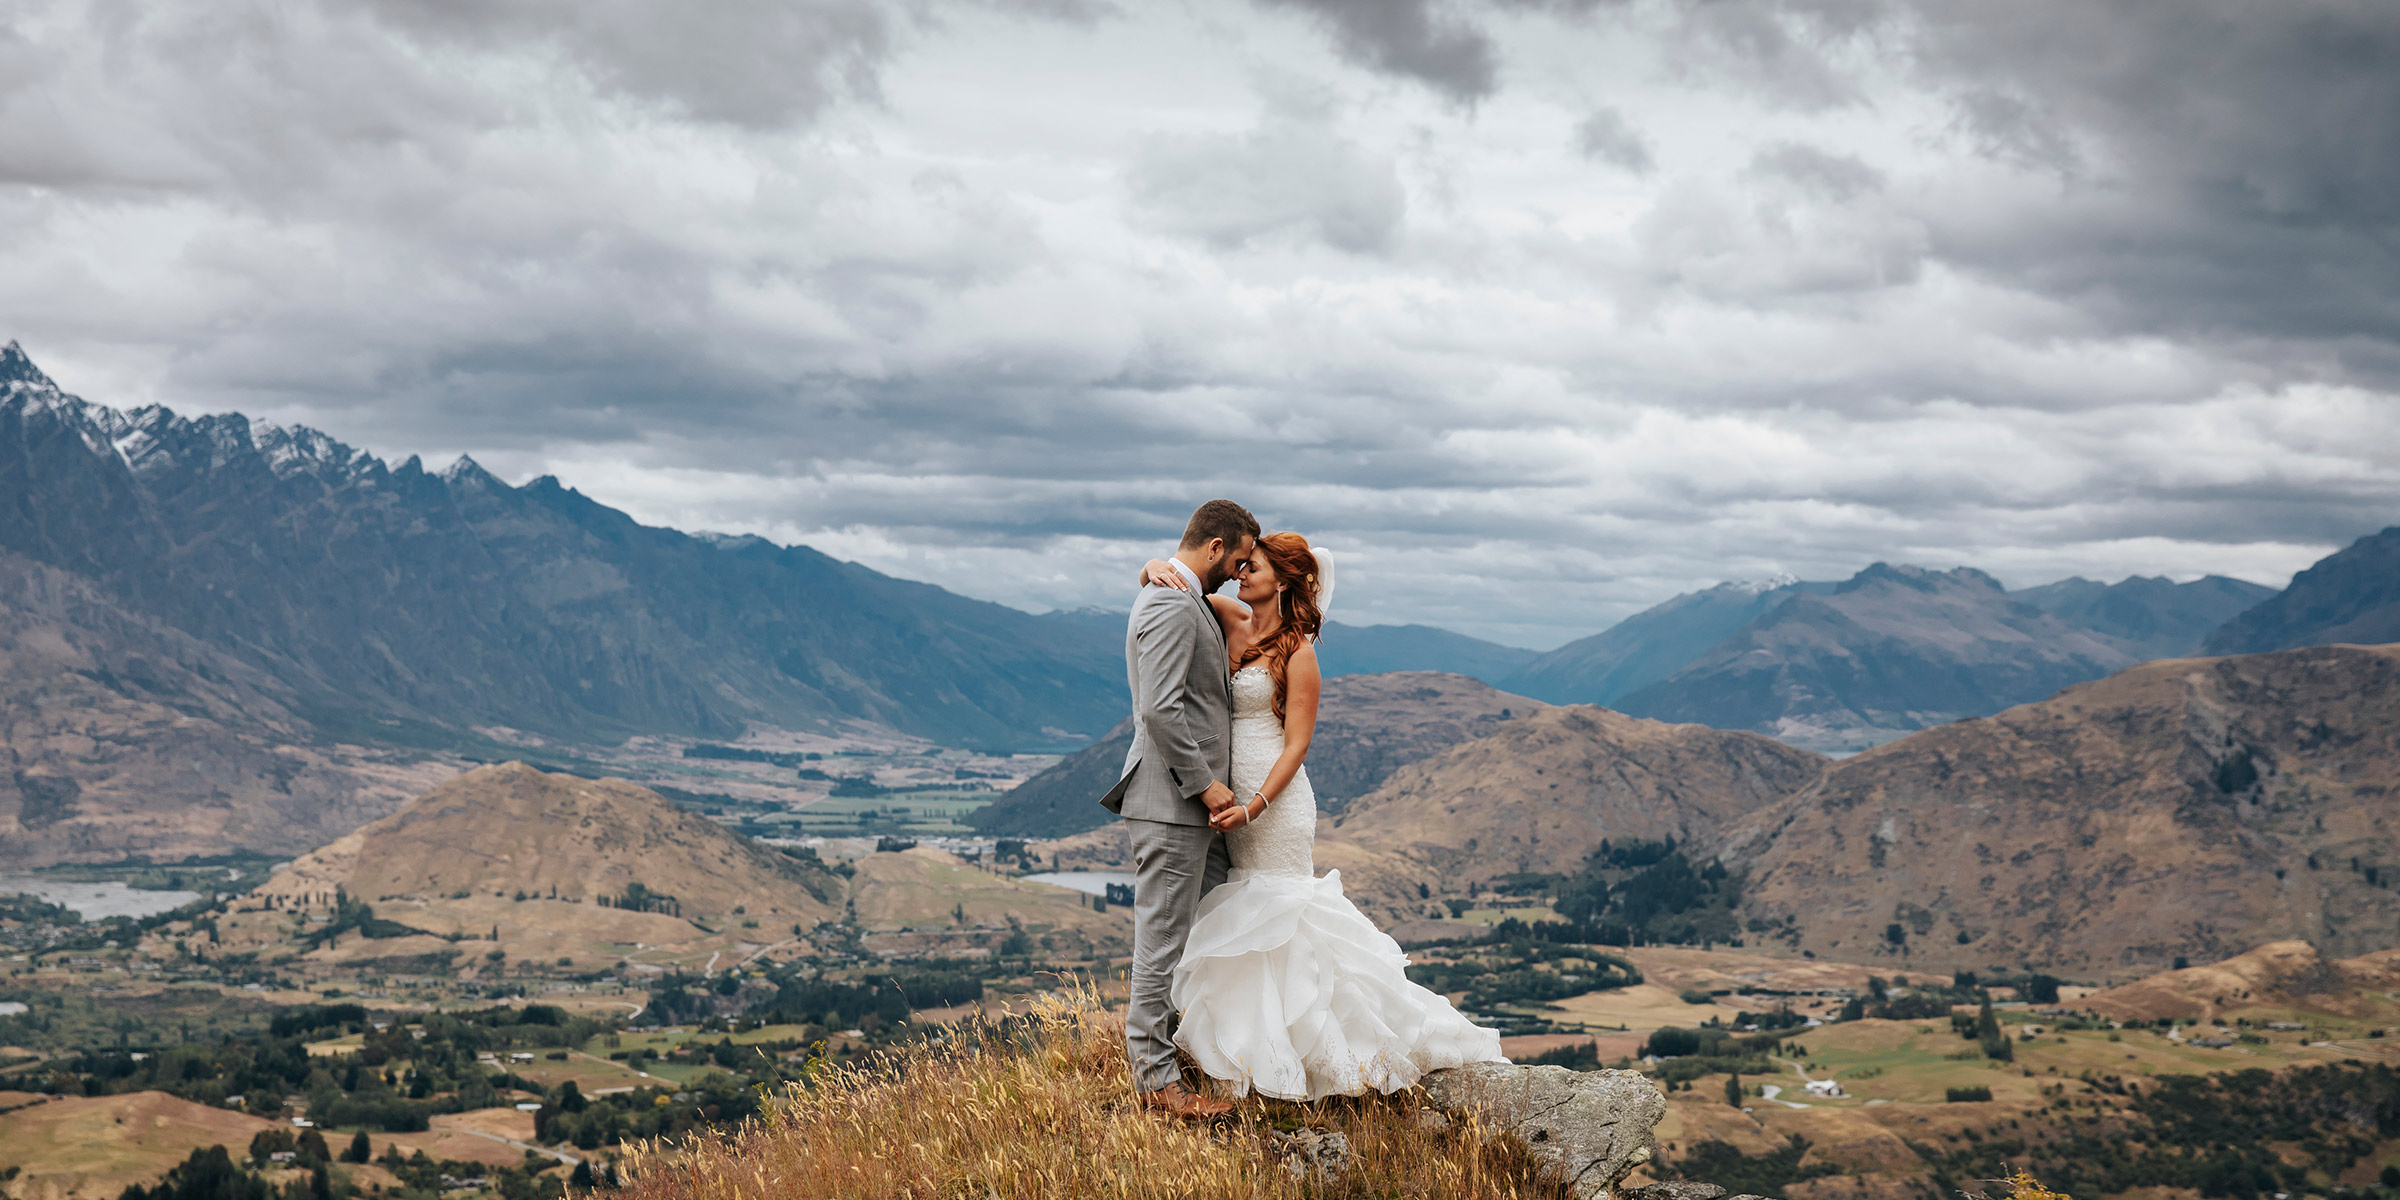 Coronet Peak Elopement Wedding